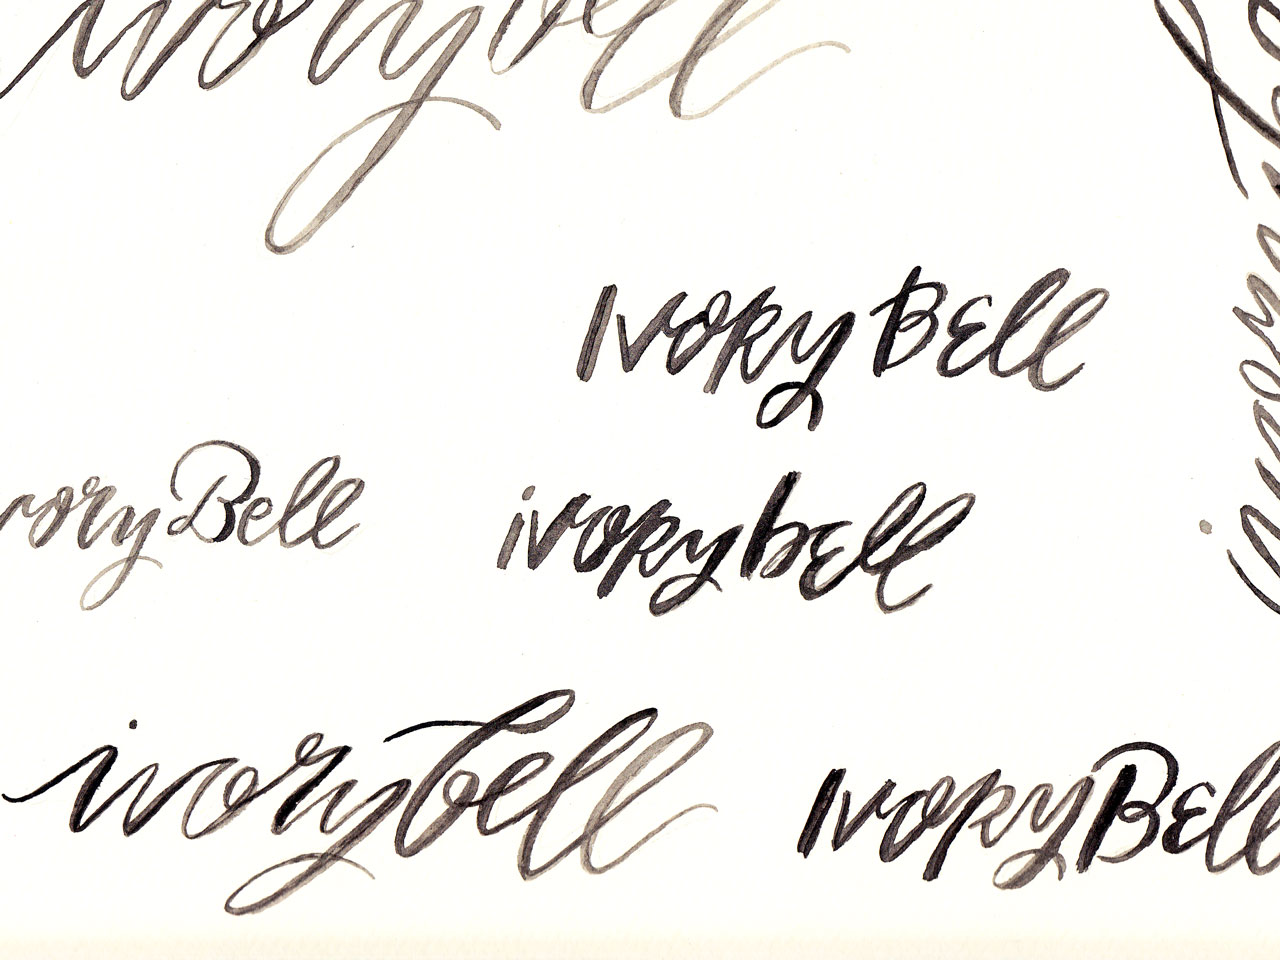 Ivory_Bell_Sketches.jpg